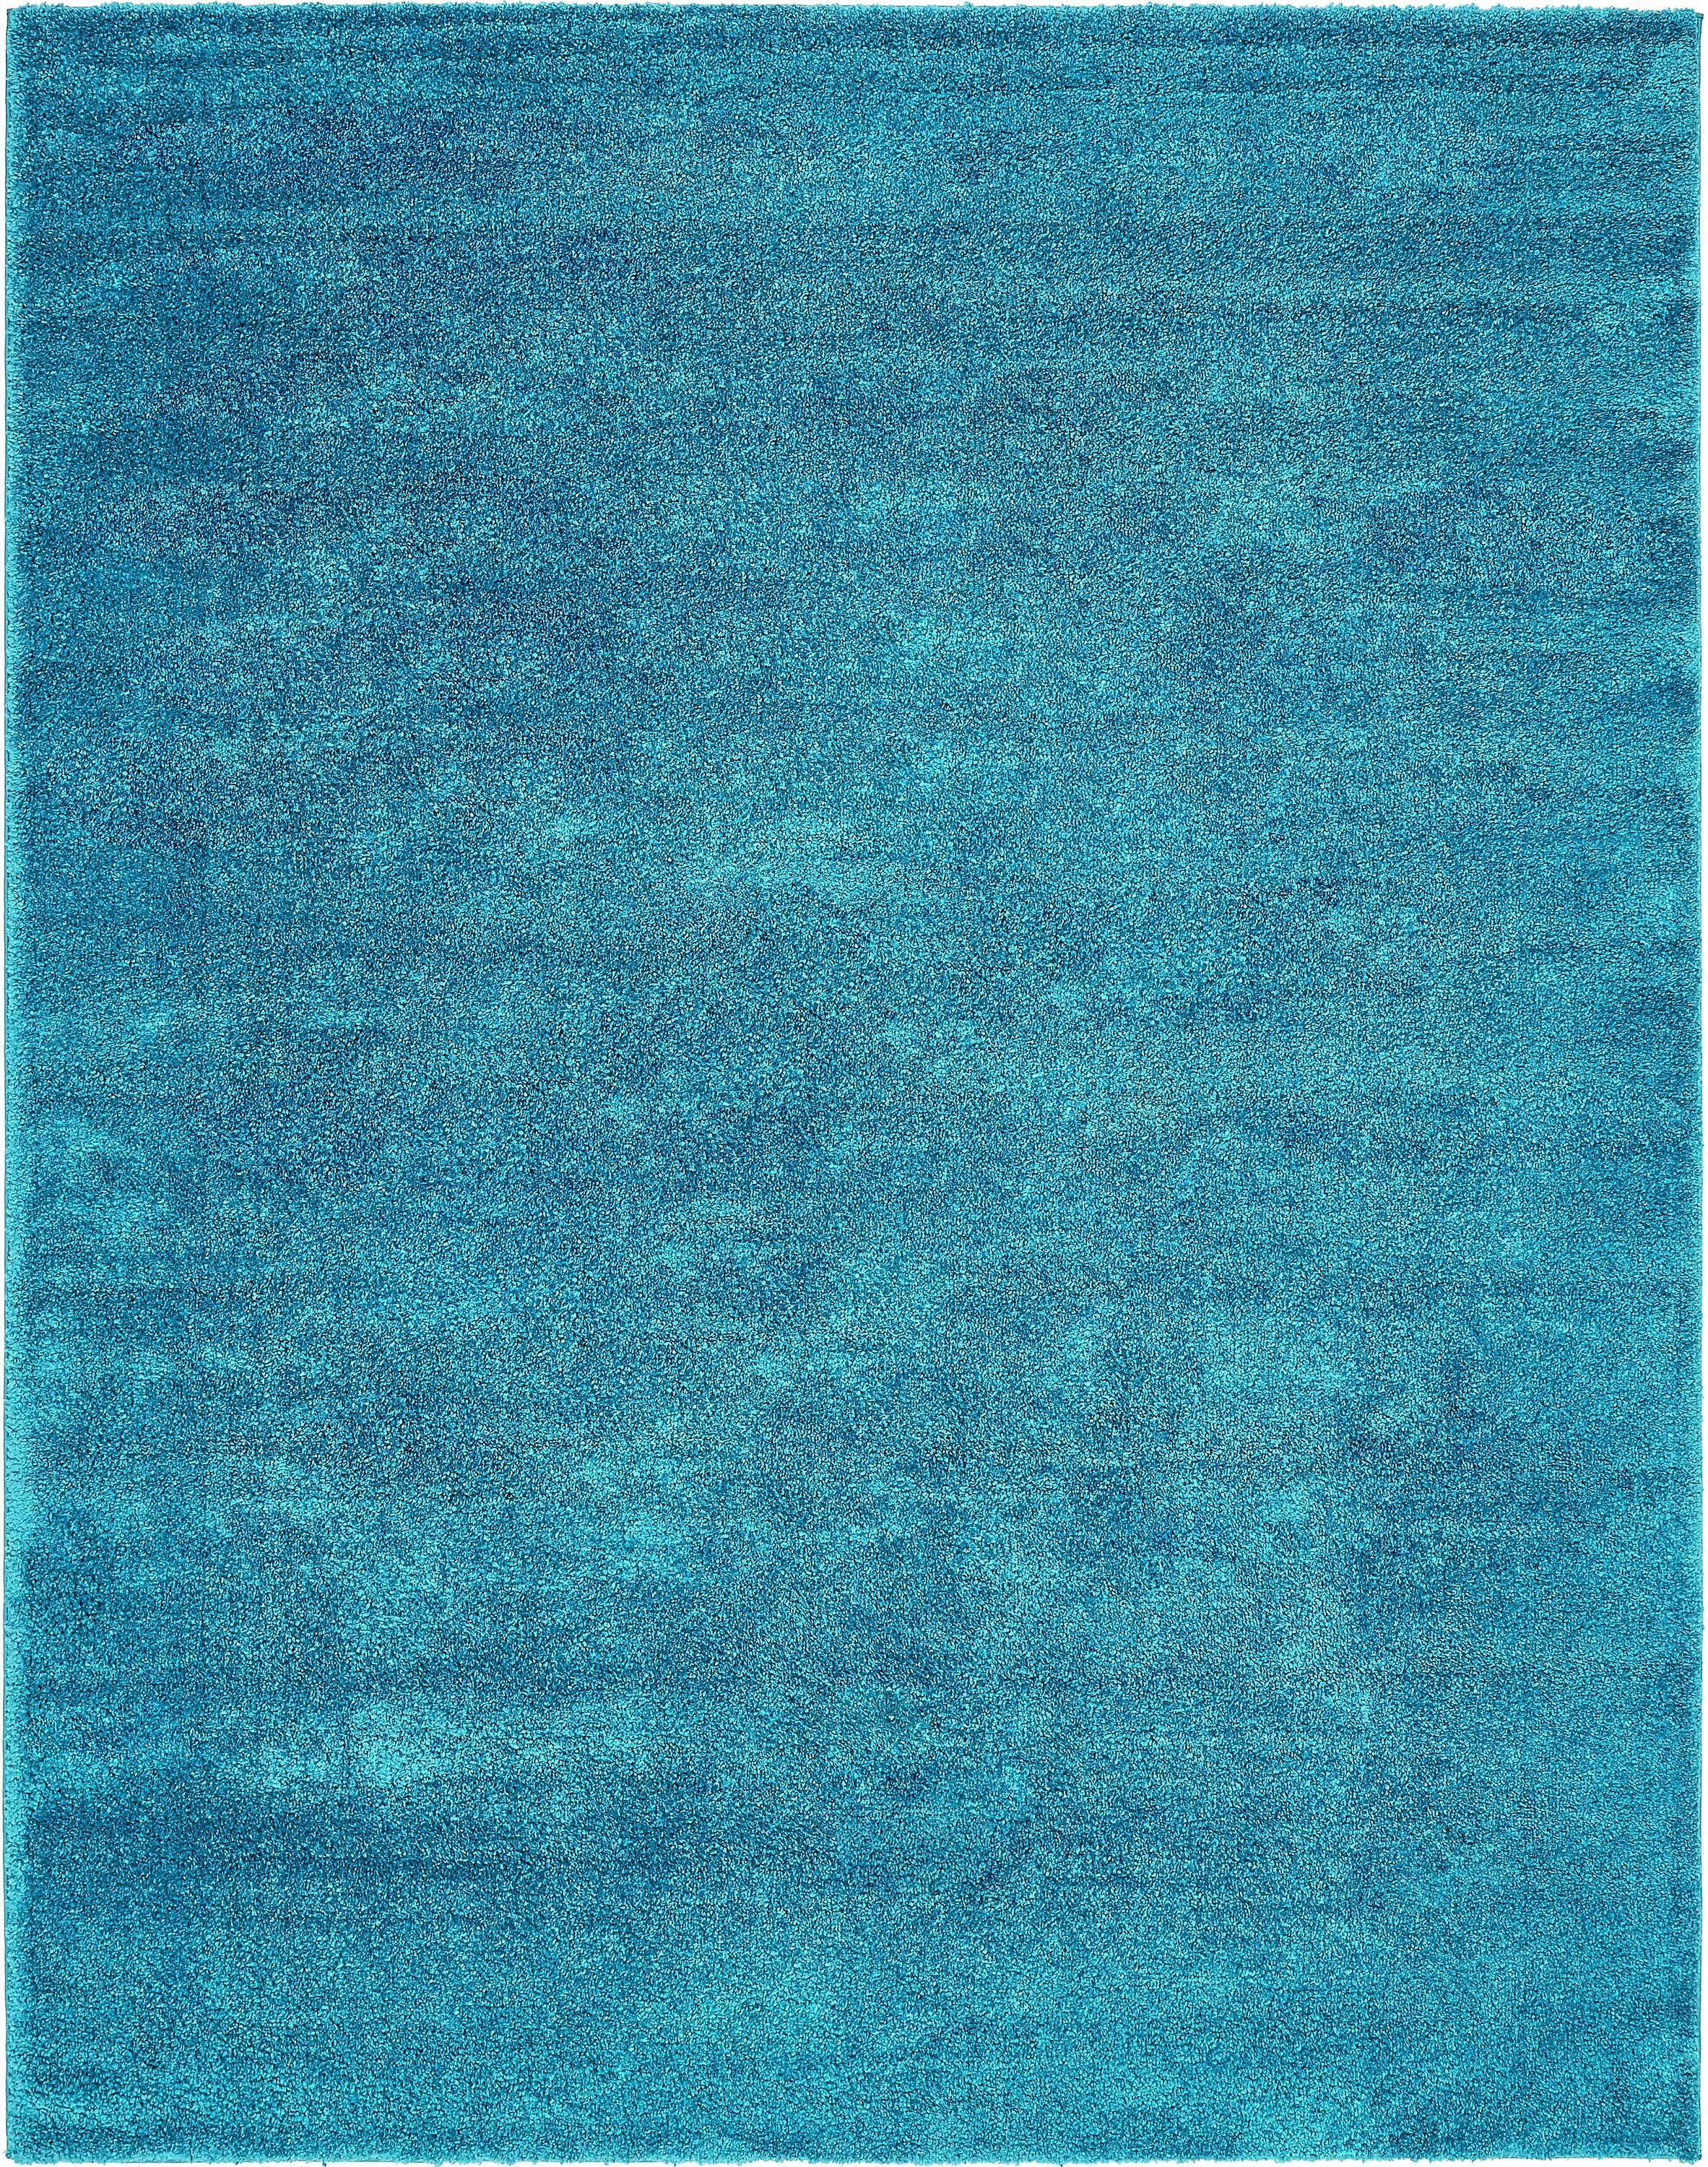 Turquoise 10 X 13 Solid Frieze Rug Area Rugs Esalerugs Rugs Turquoise Rug Turquoise